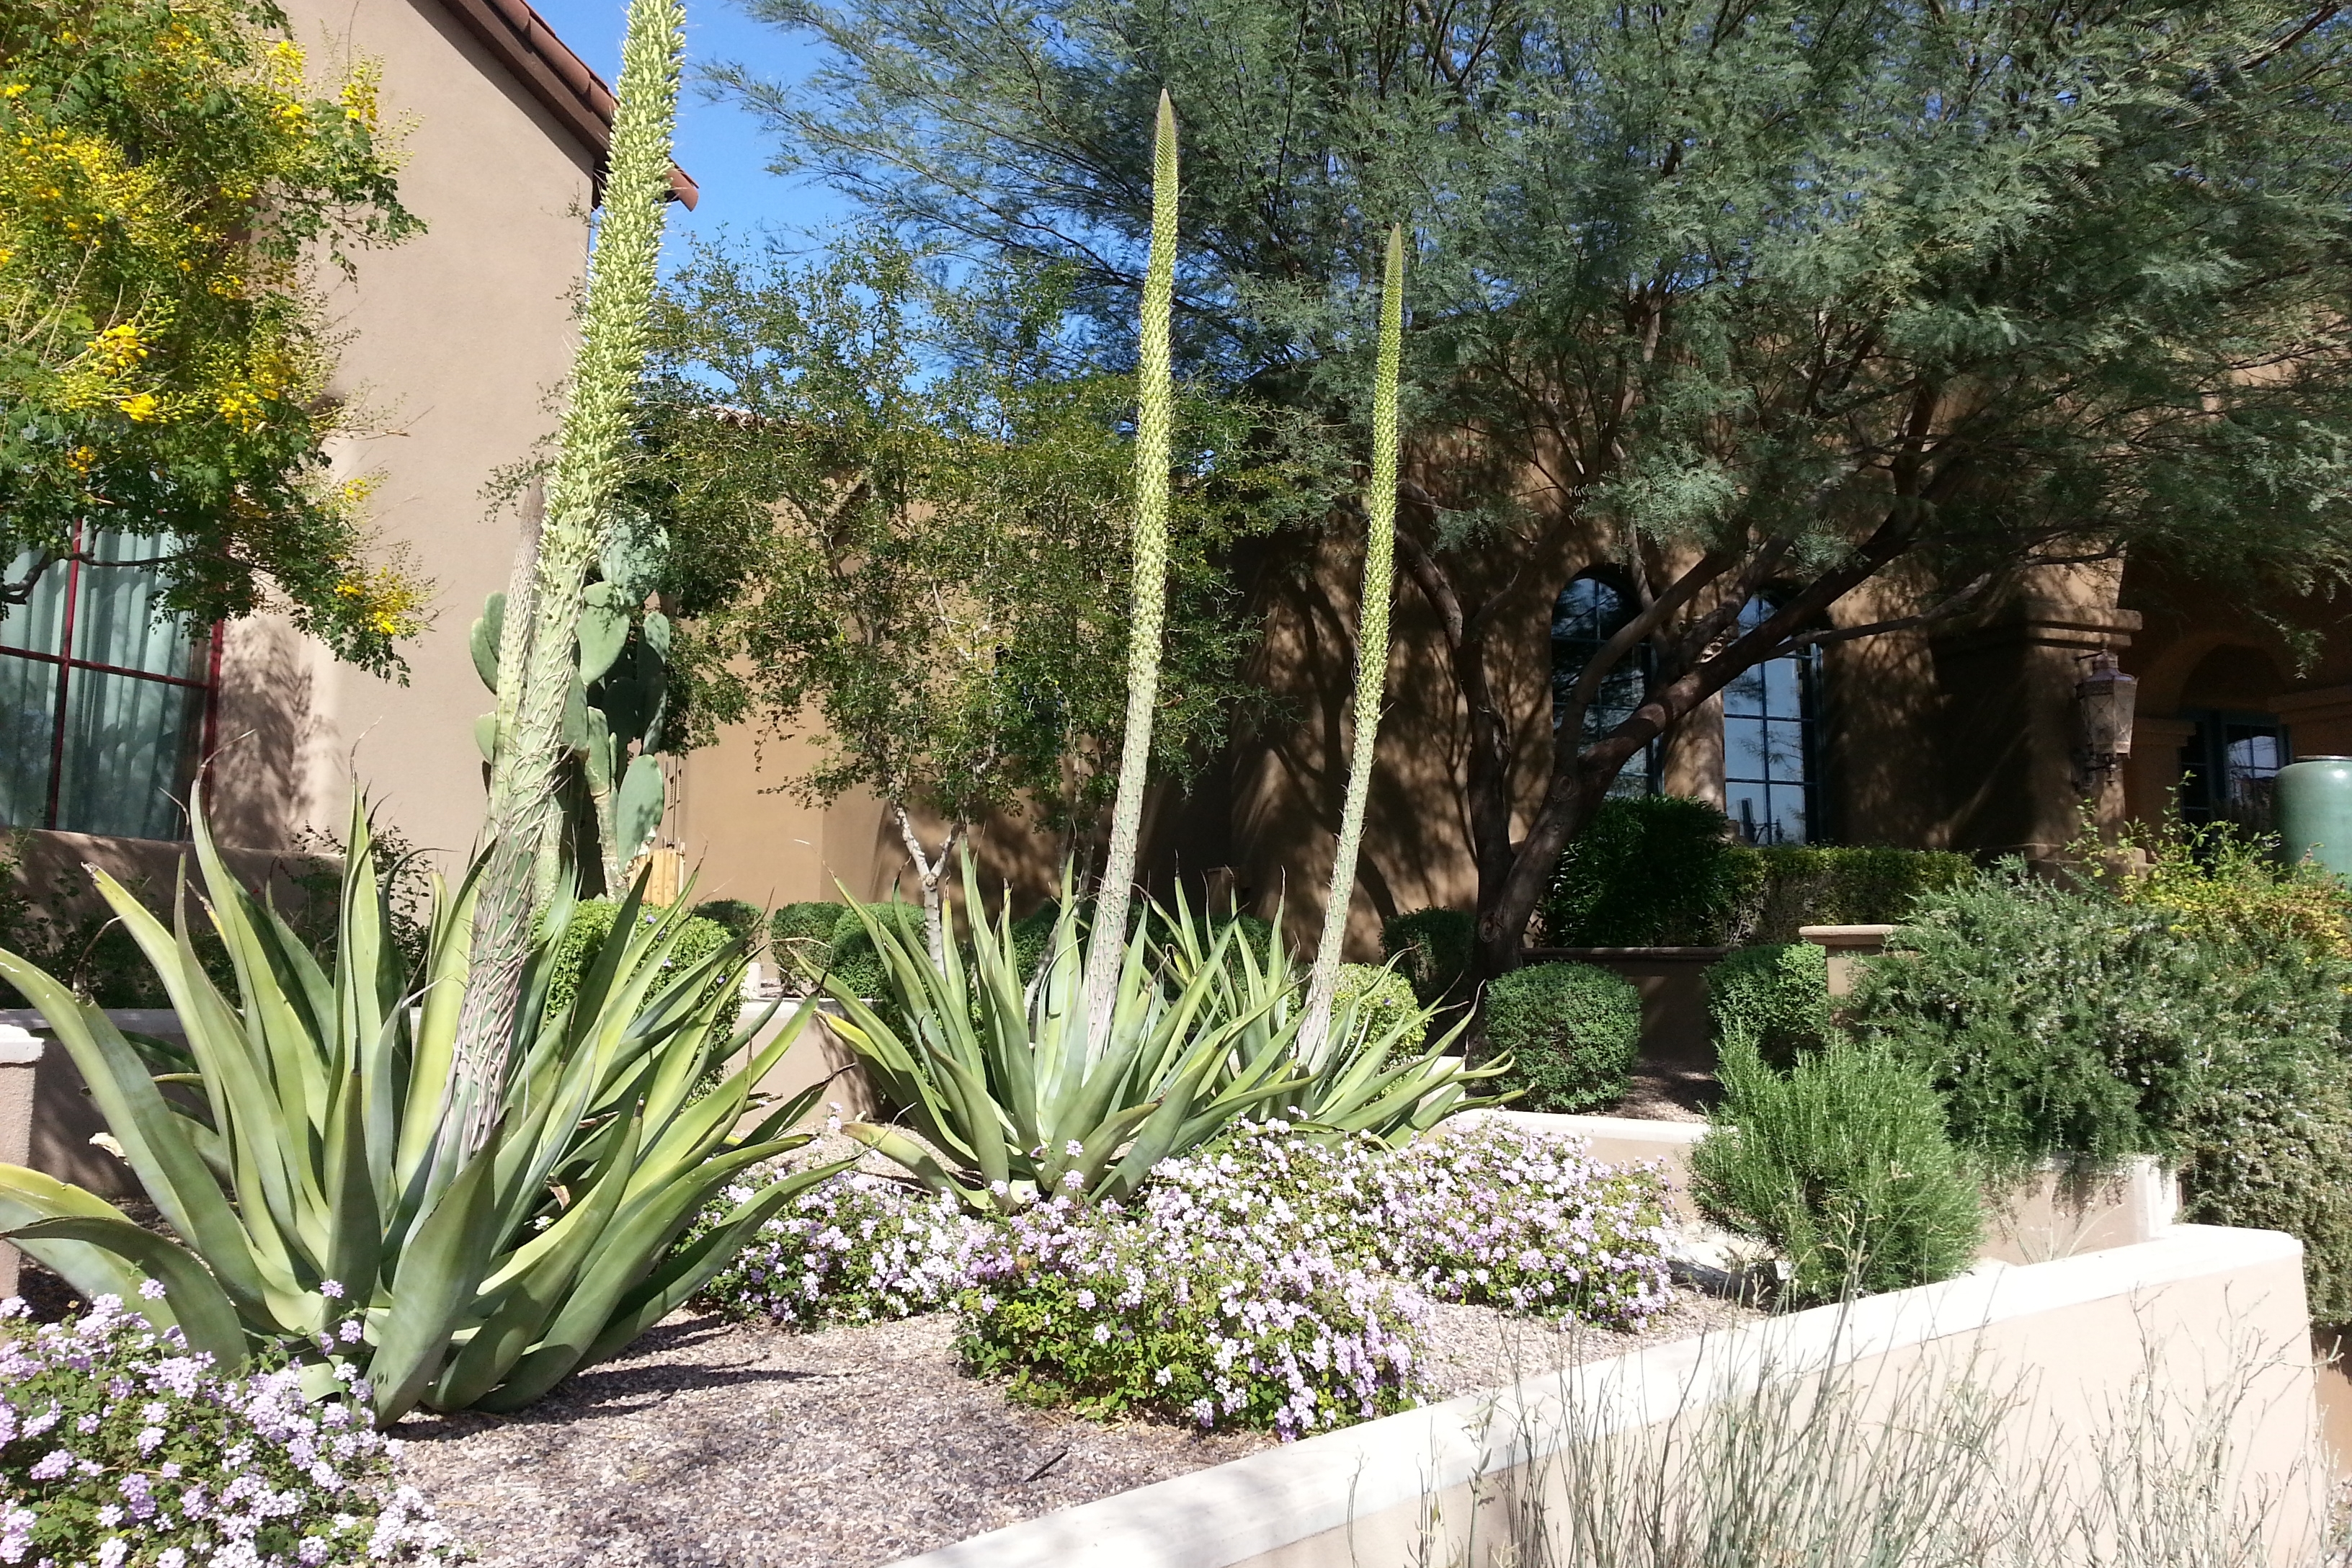 Image of: Landscaping In The Desert The Agave Century Plant Allison Throughout Desert Landscaping Plants Ideal Desert Landscaping Plants At Home